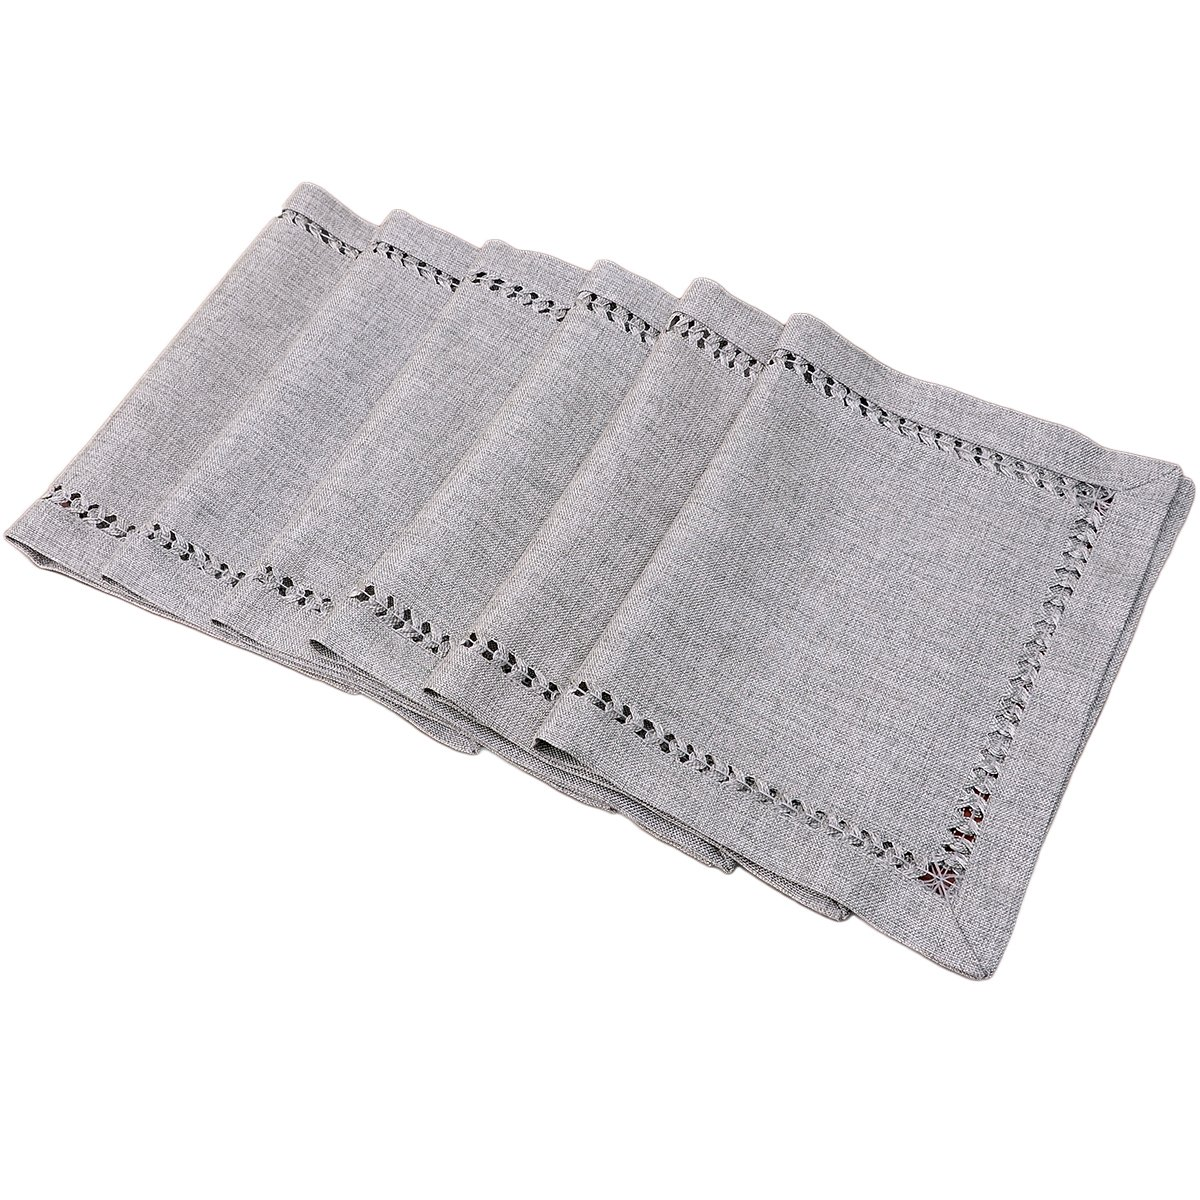 GRELUCGO Set Of 6 Decorative Handmade Hemstitch Gray Dining Table Placemats, Rectangular 12 By 18 Inch